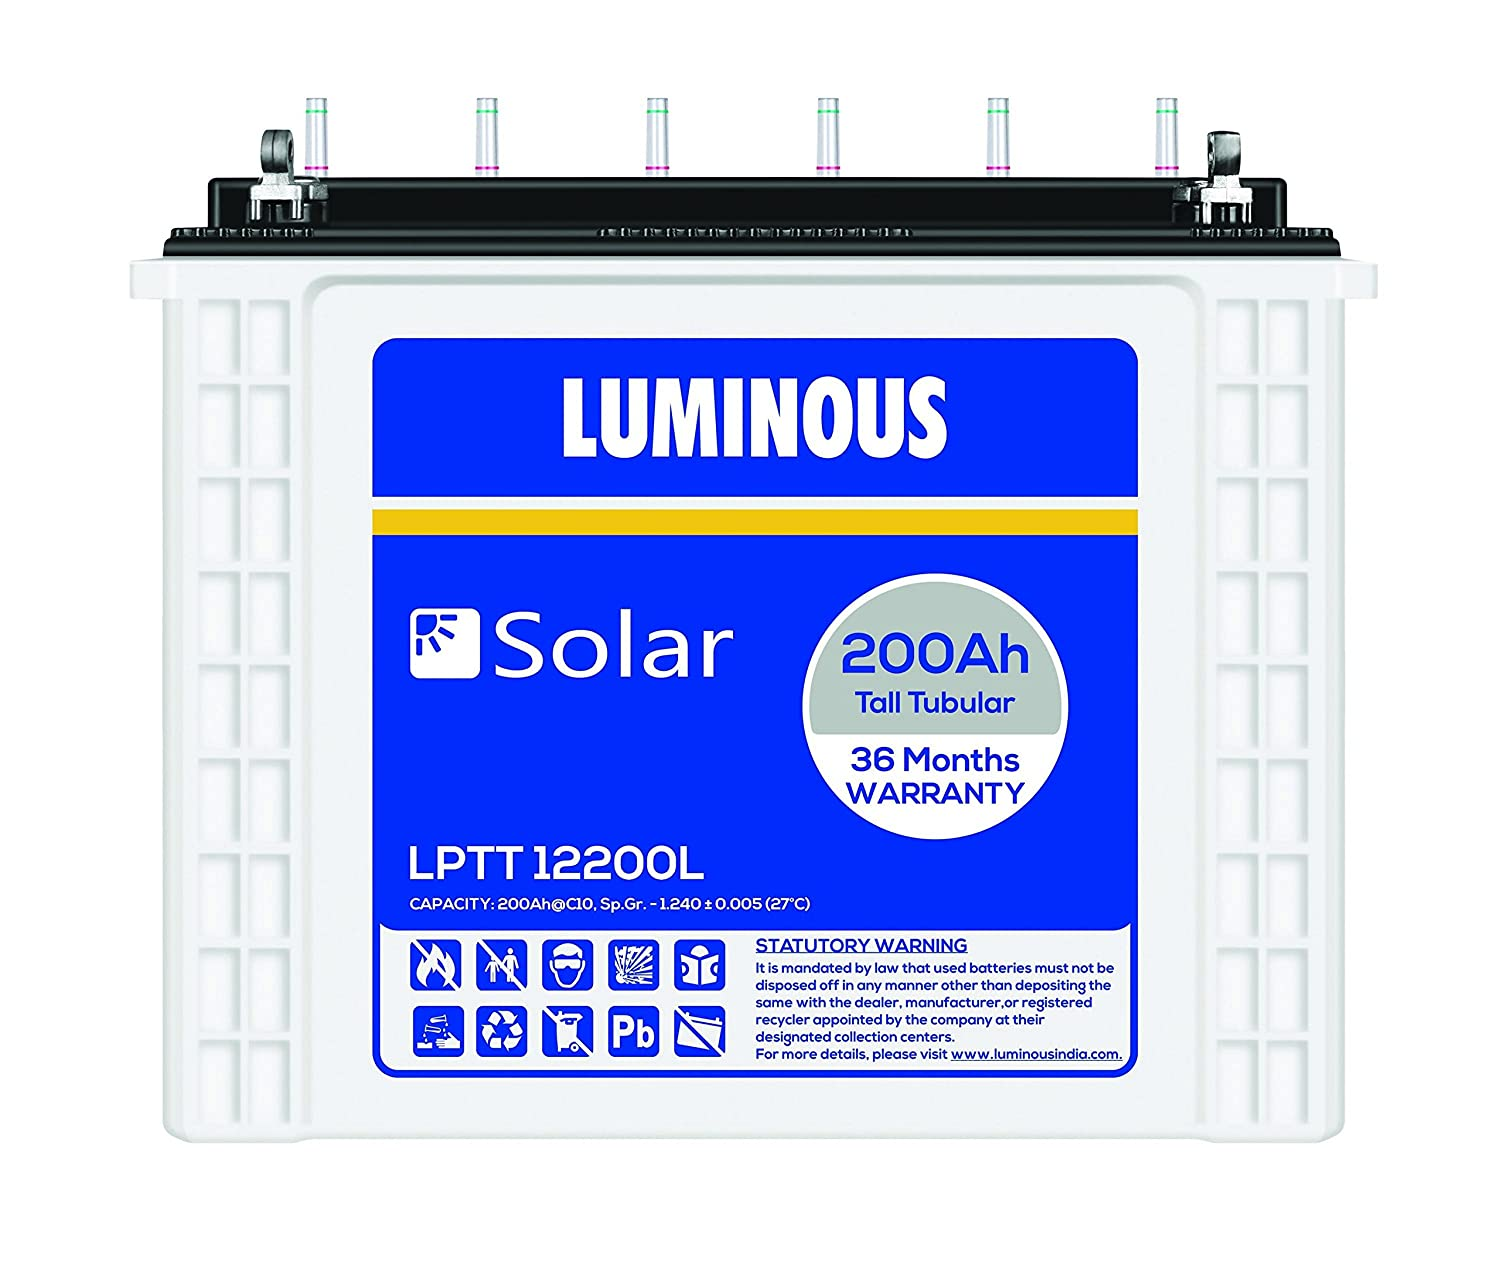 Luminous Solar Battery 200ah -LPT12200L